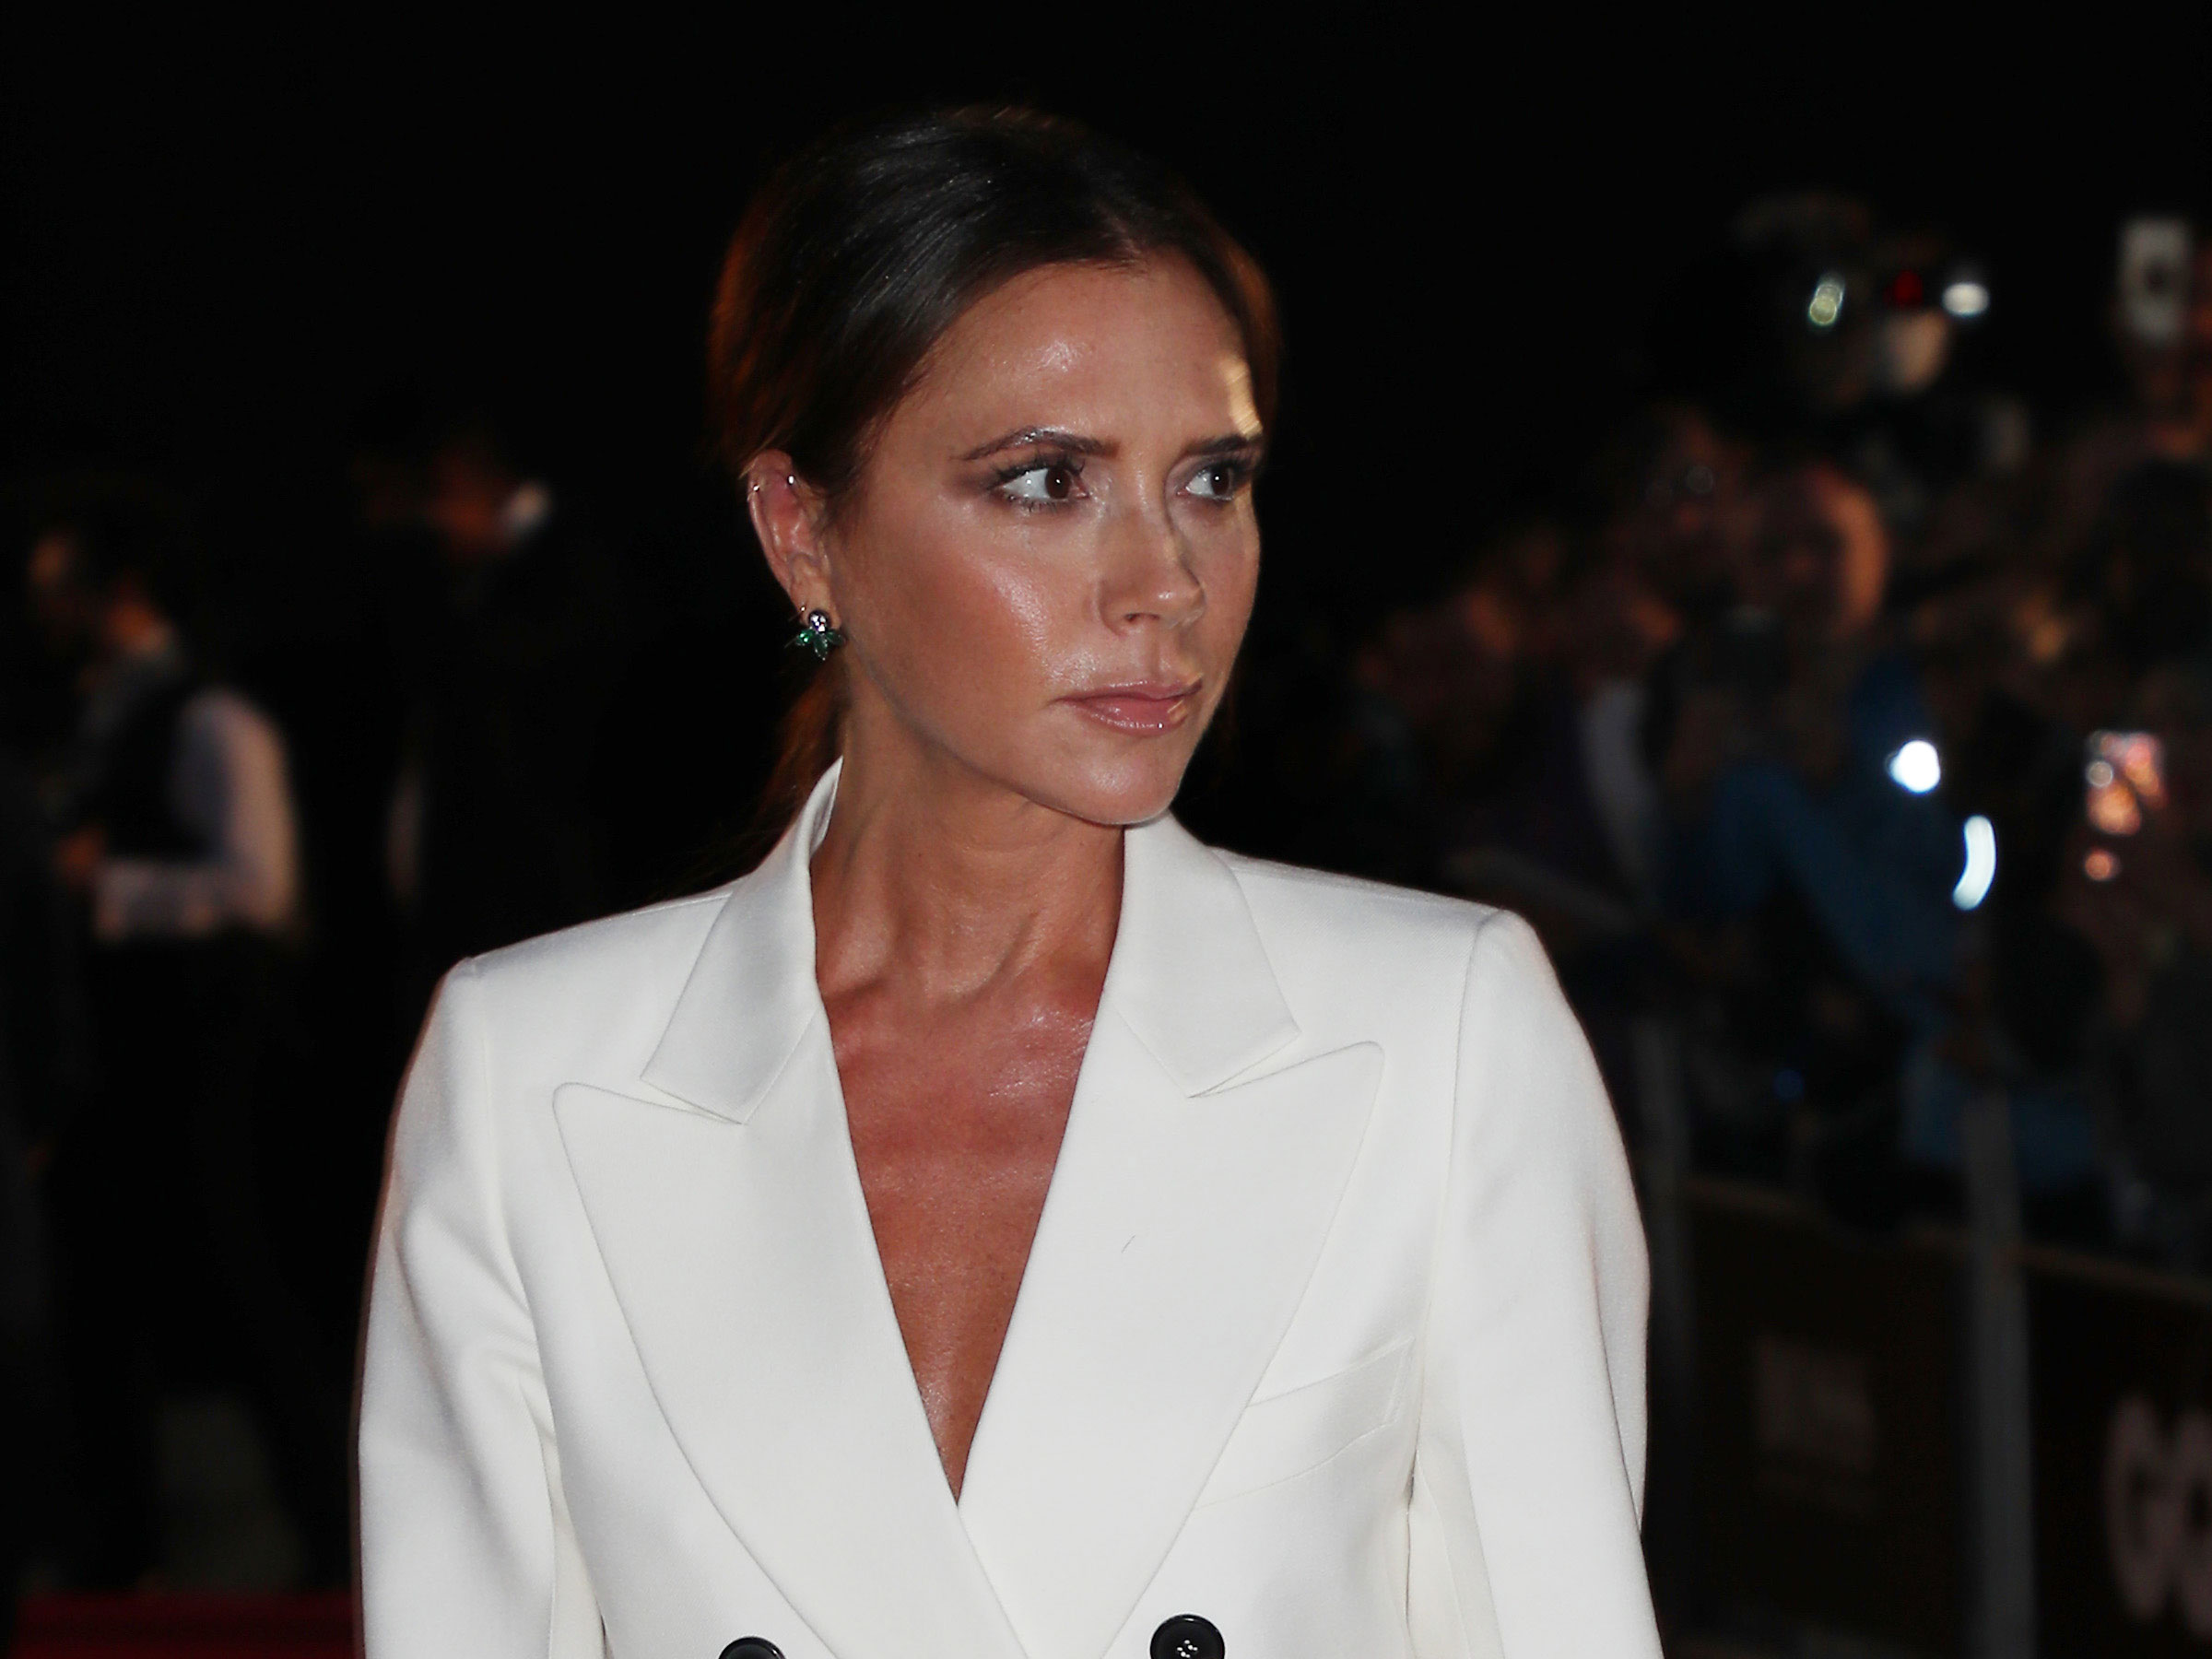 Victoria Beckham just did something she's never done before and fans can't believe it